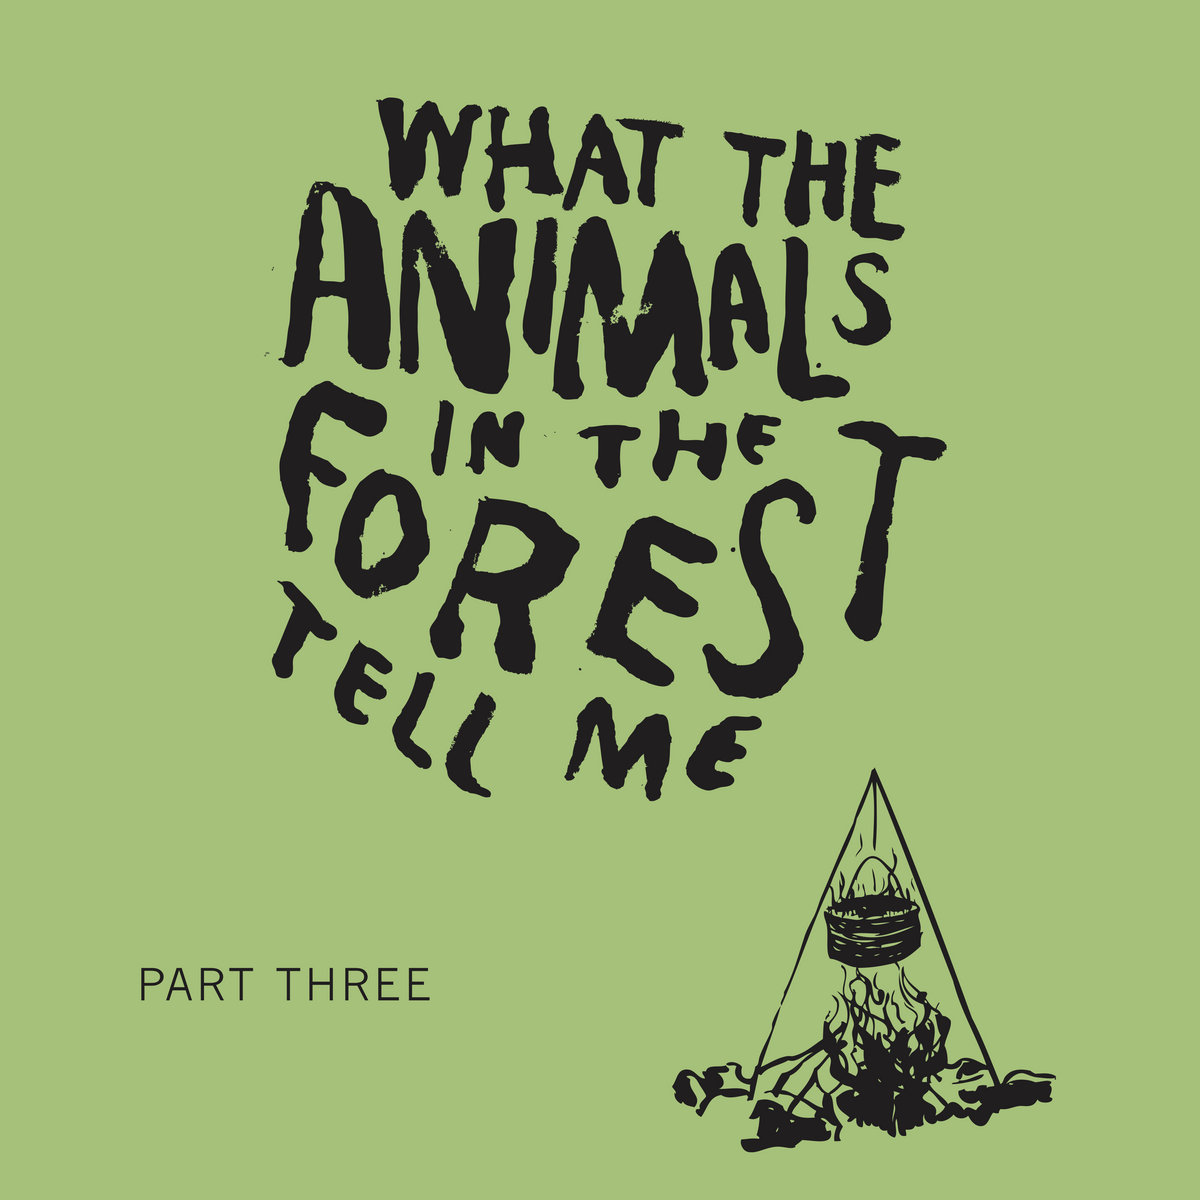 Ep. 7 | What the Animals in the Forest Tell Me (Part 3) by The Fruit Stare